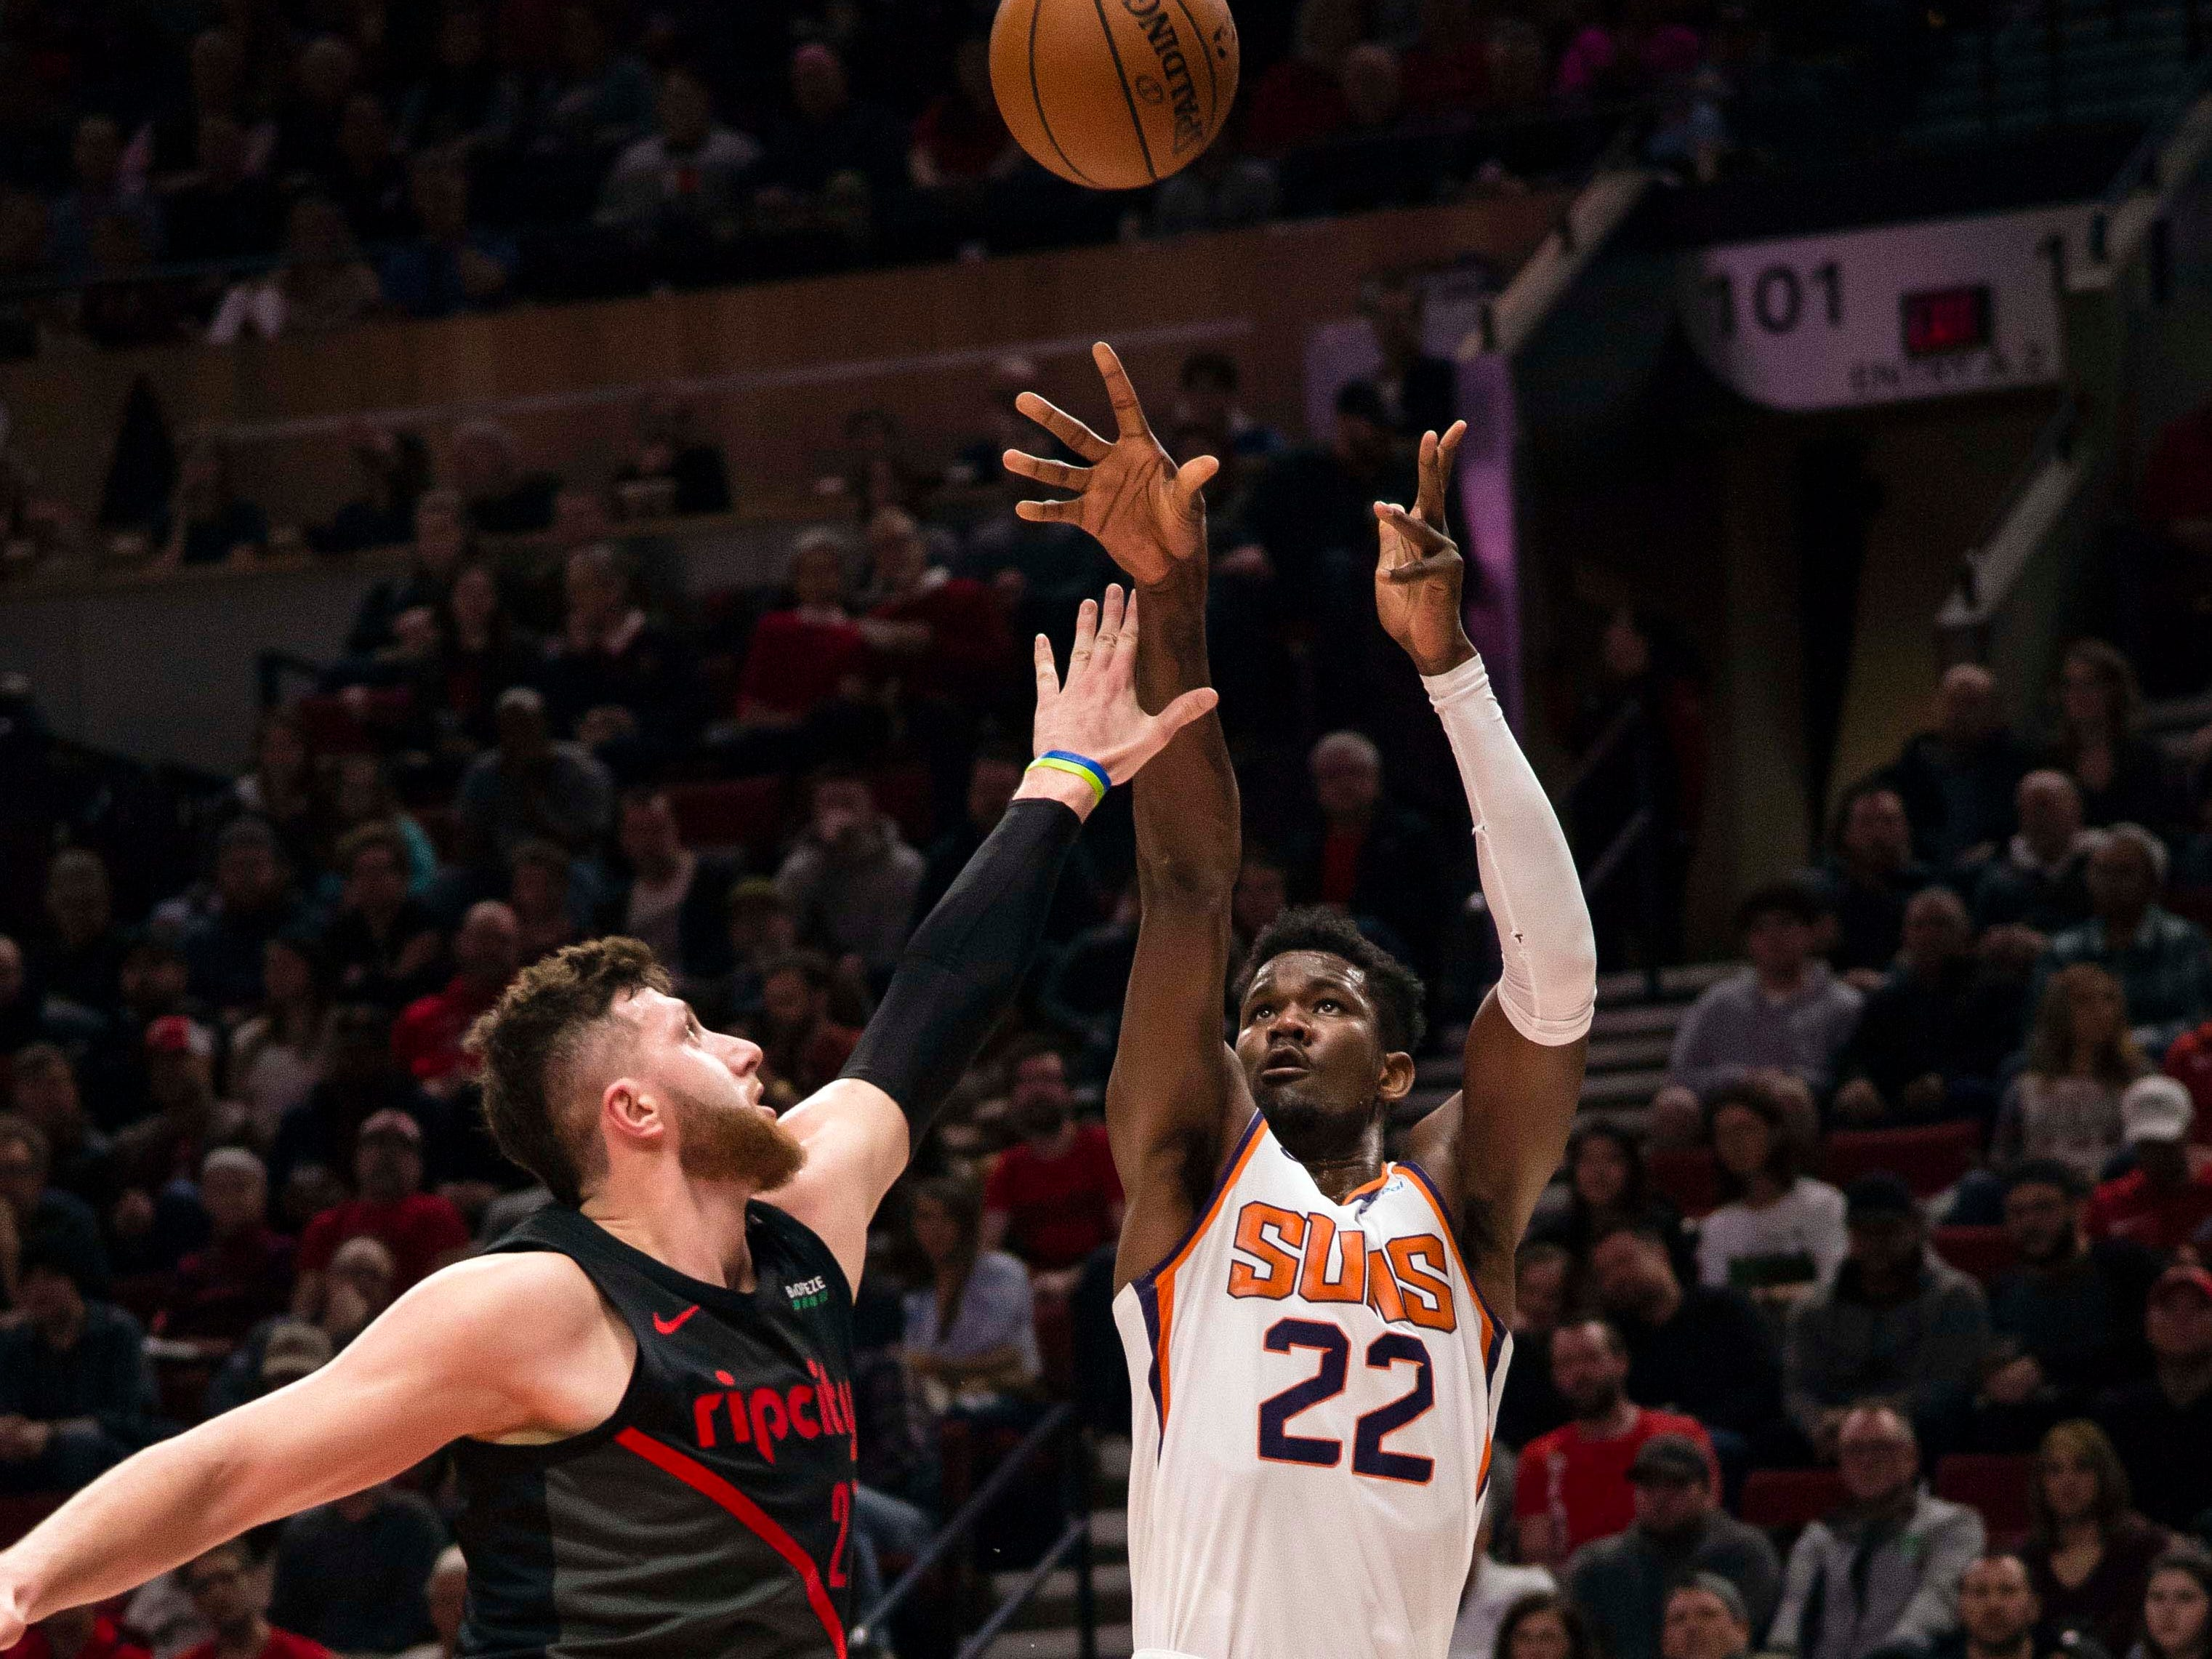 Mar 9, 2019; Portland, OR, USA; Phoenix Suns center Deandre Ayton (22) shoots a basket against Portland Trail Blazers center Jusuf Nurkic (27) during the first half at Moda Center.